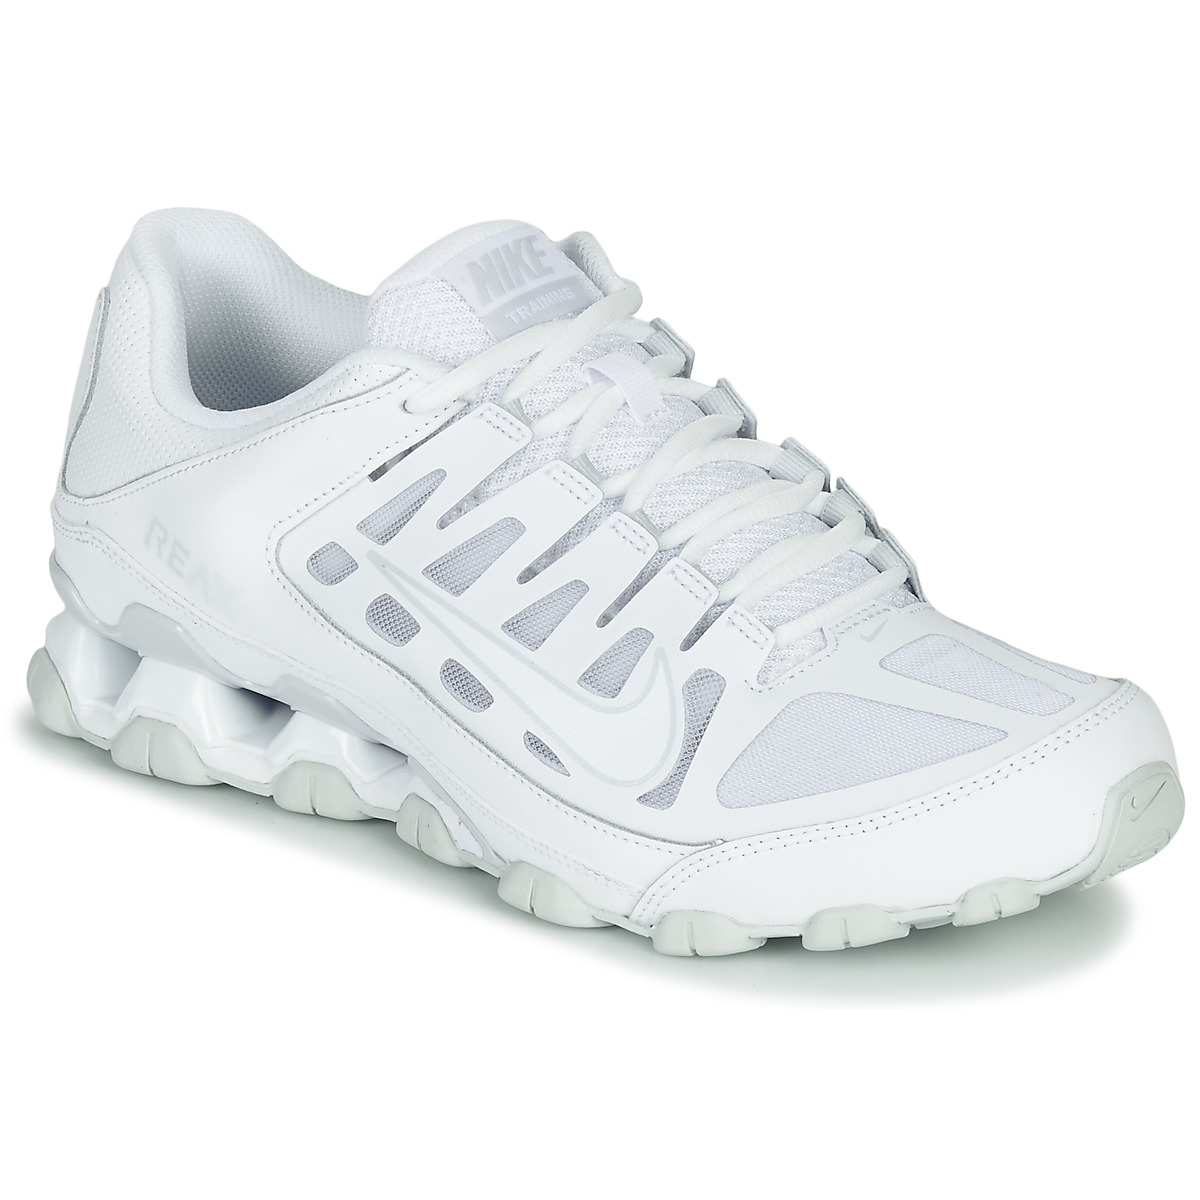 Nike REAX 8 White - Fast delivery